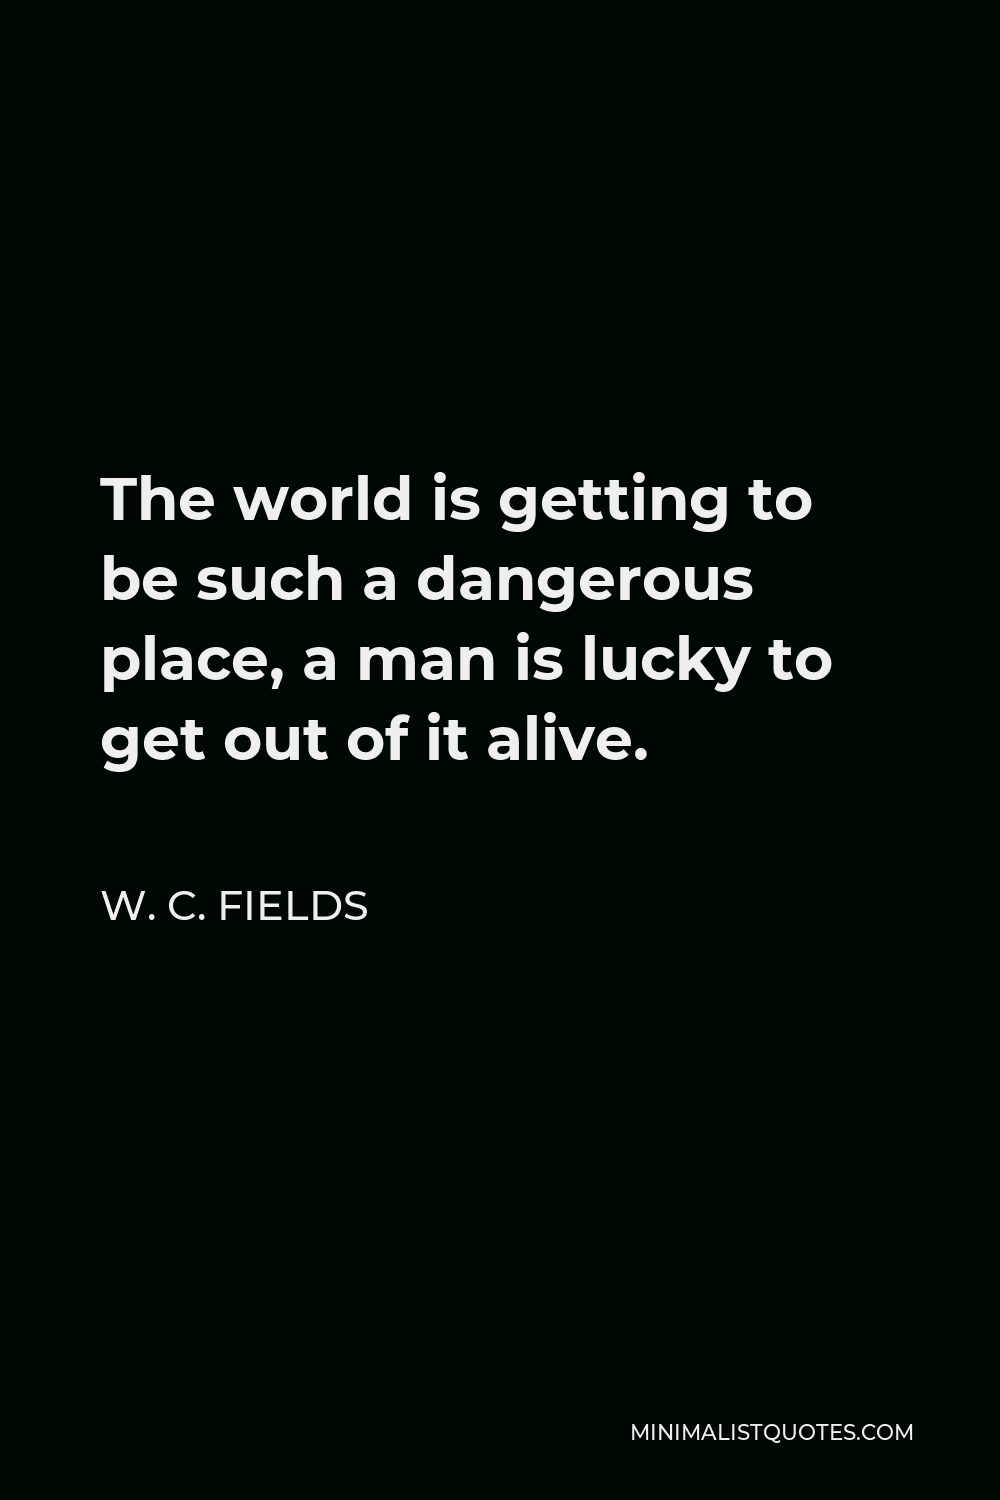 W. C. Fields Quote - The world is getting to be such a dangerous place, a man is lucky to get out of it alive.